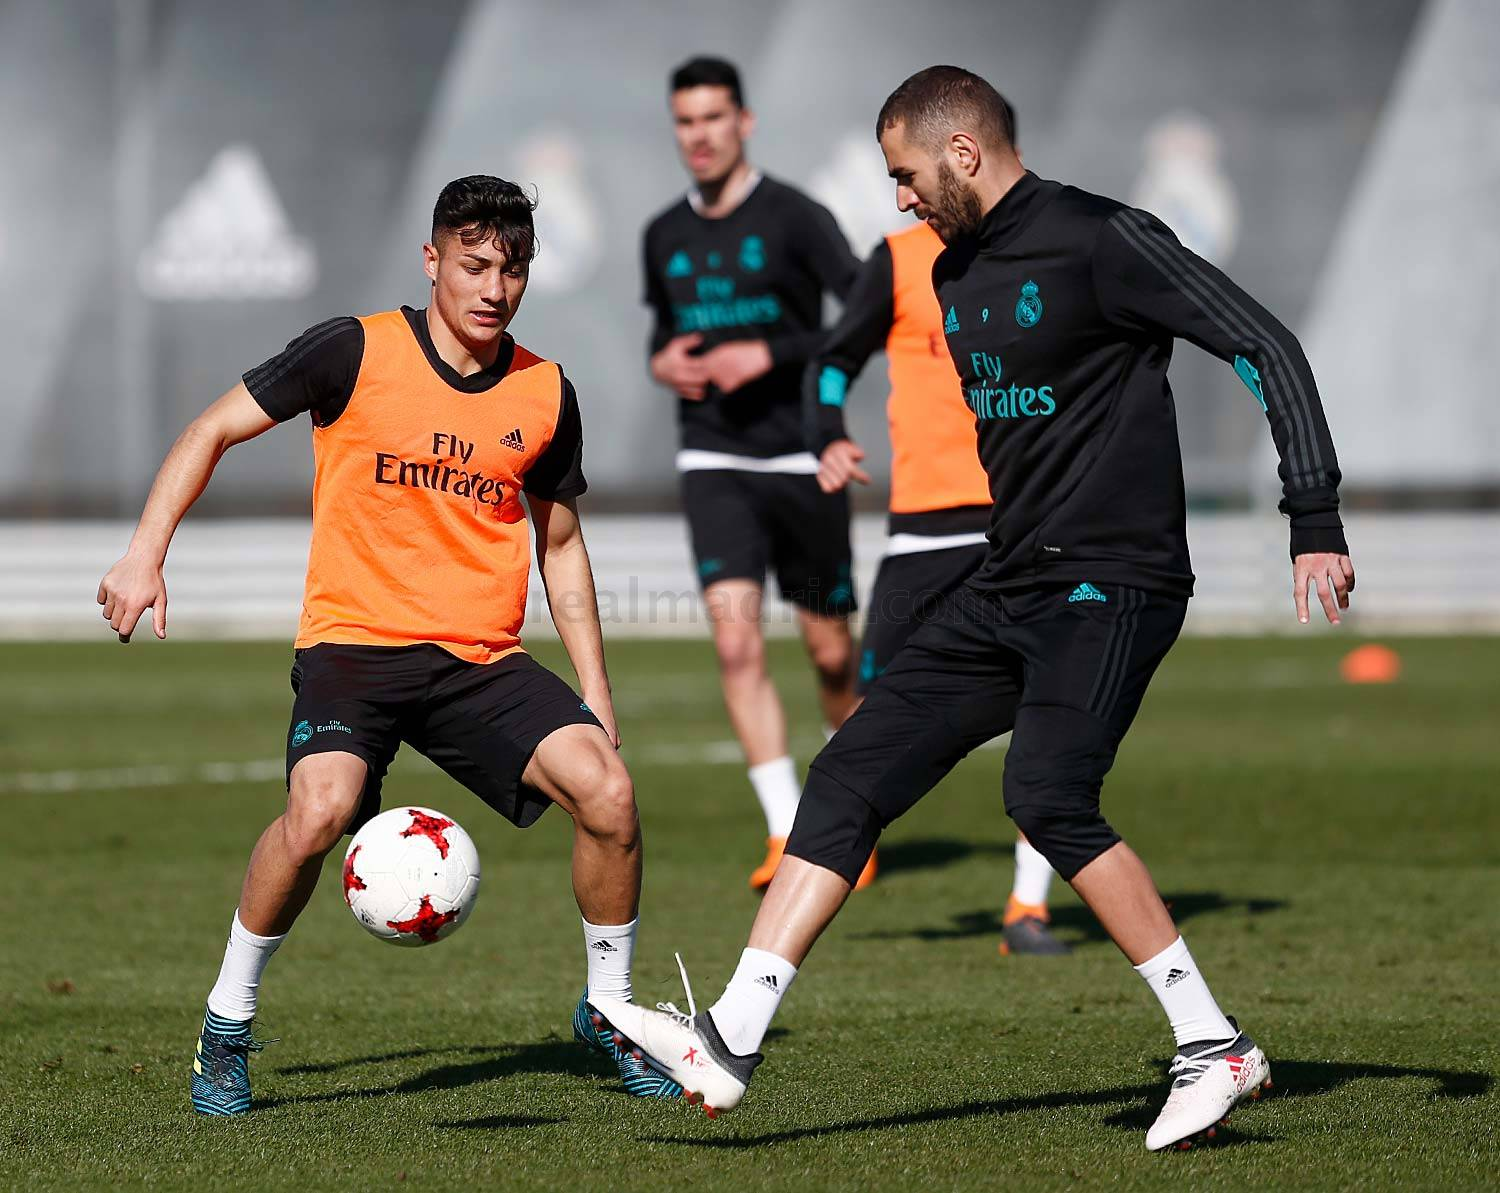 Real Madrid - Entrenamiento del Real Madrid - 26-03-2018